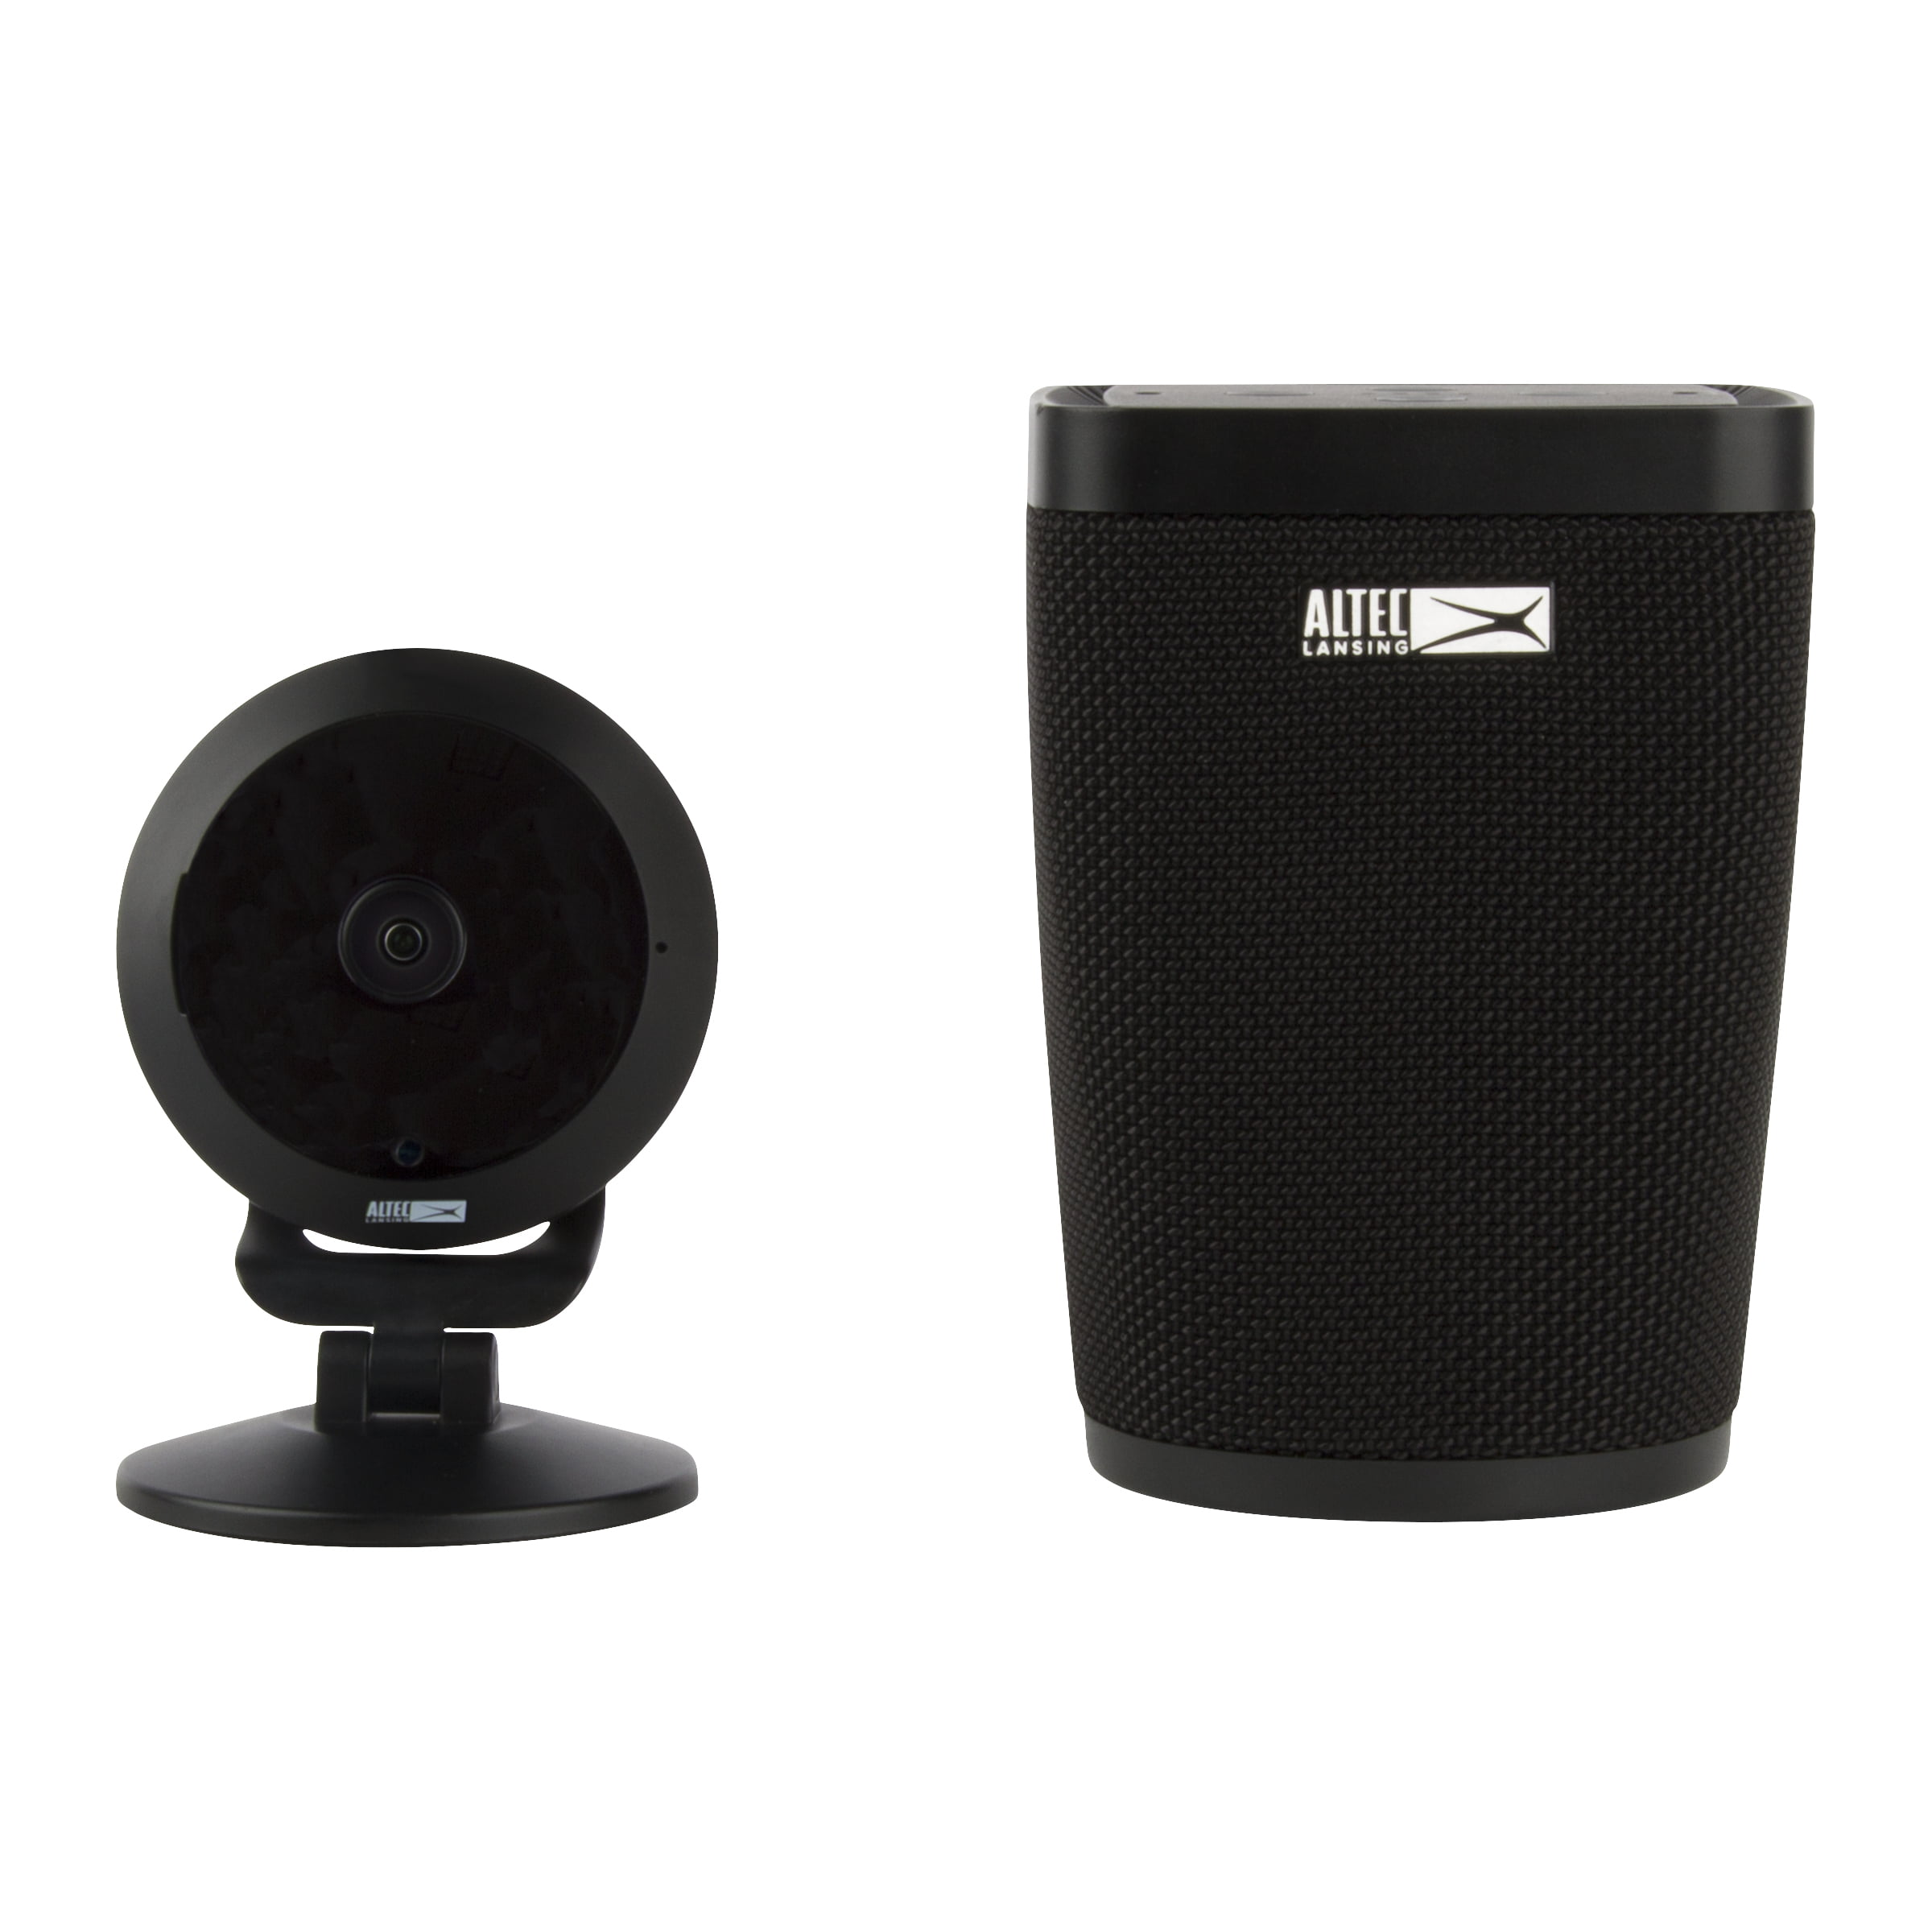 Altec Lansing Voice Activated Smart Security System bundle